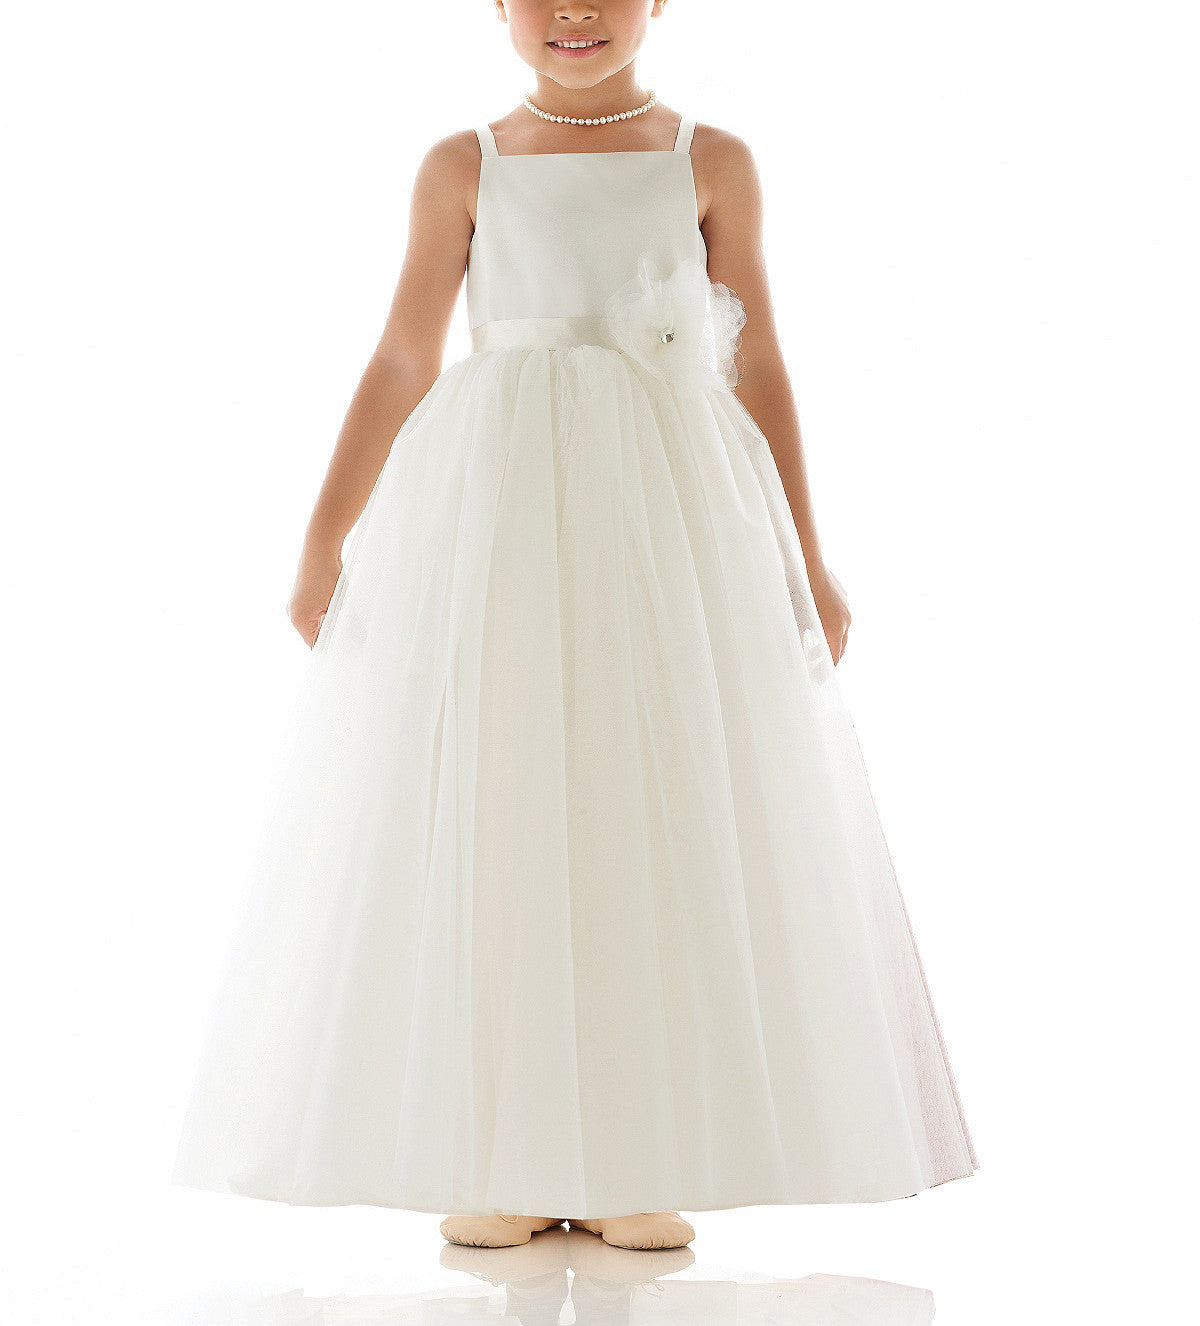 b1abe5a4eb98 1822FlowerGirlDresses_color-is_ivory_large_d2375244-956d-47ac-a627-821b6d8ae35d.jpg?v=1538717227